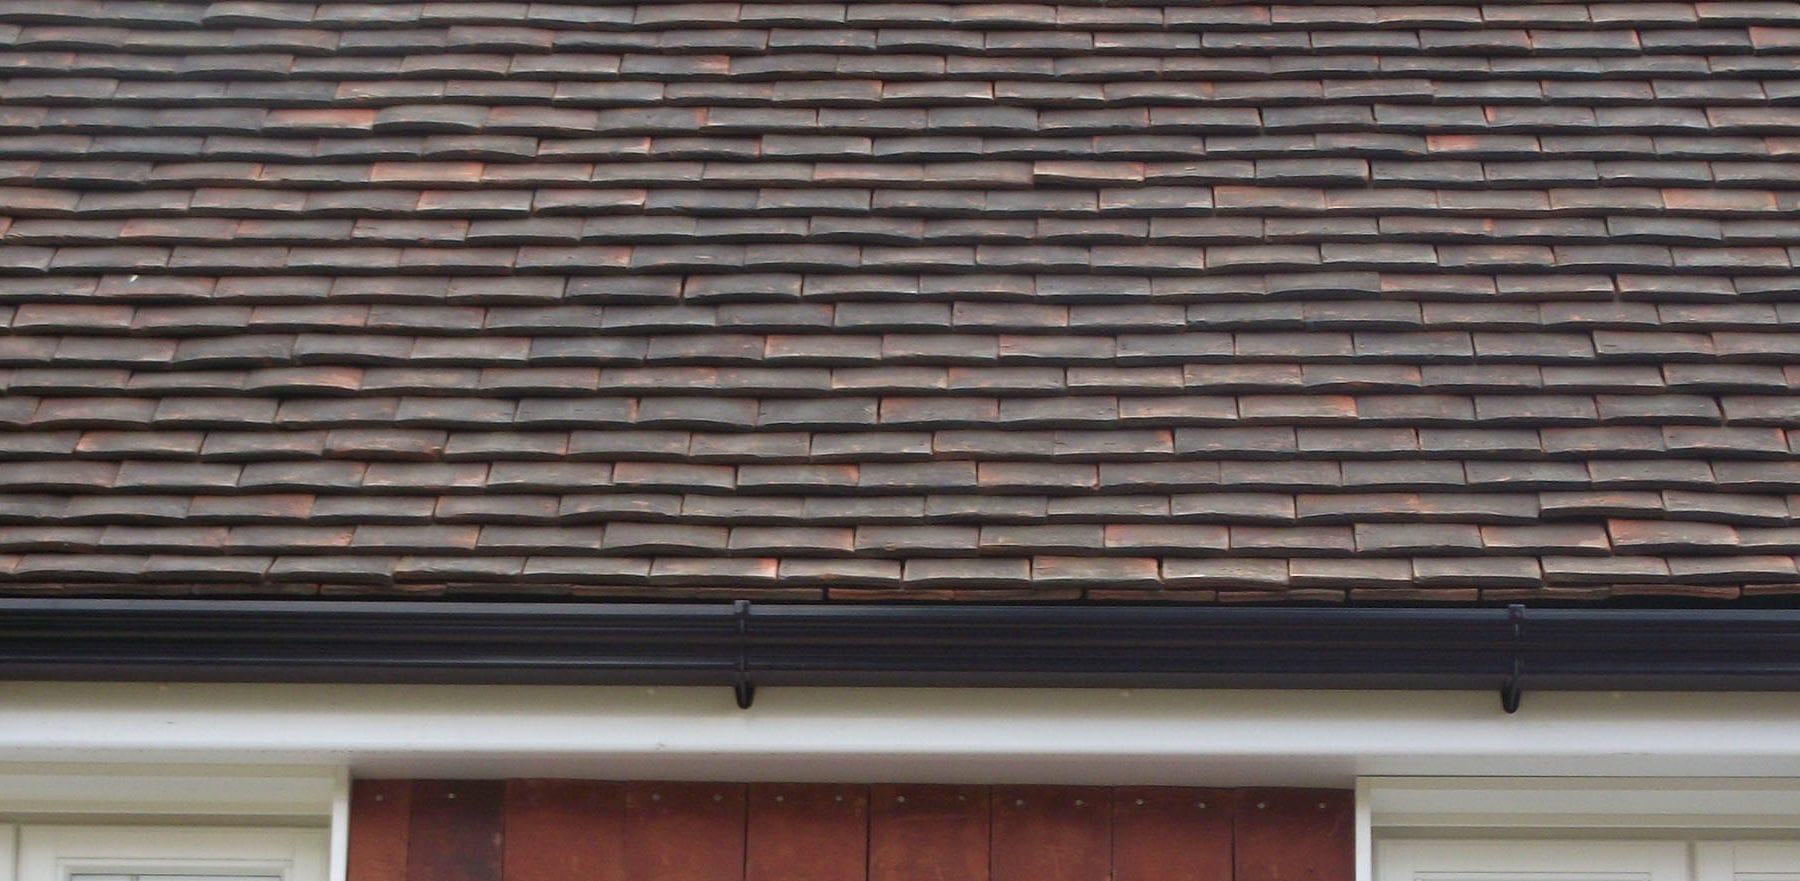 Lifestiles - Handcrafted Autumn Clay Roof Tiles - Seven Oaks, England 5